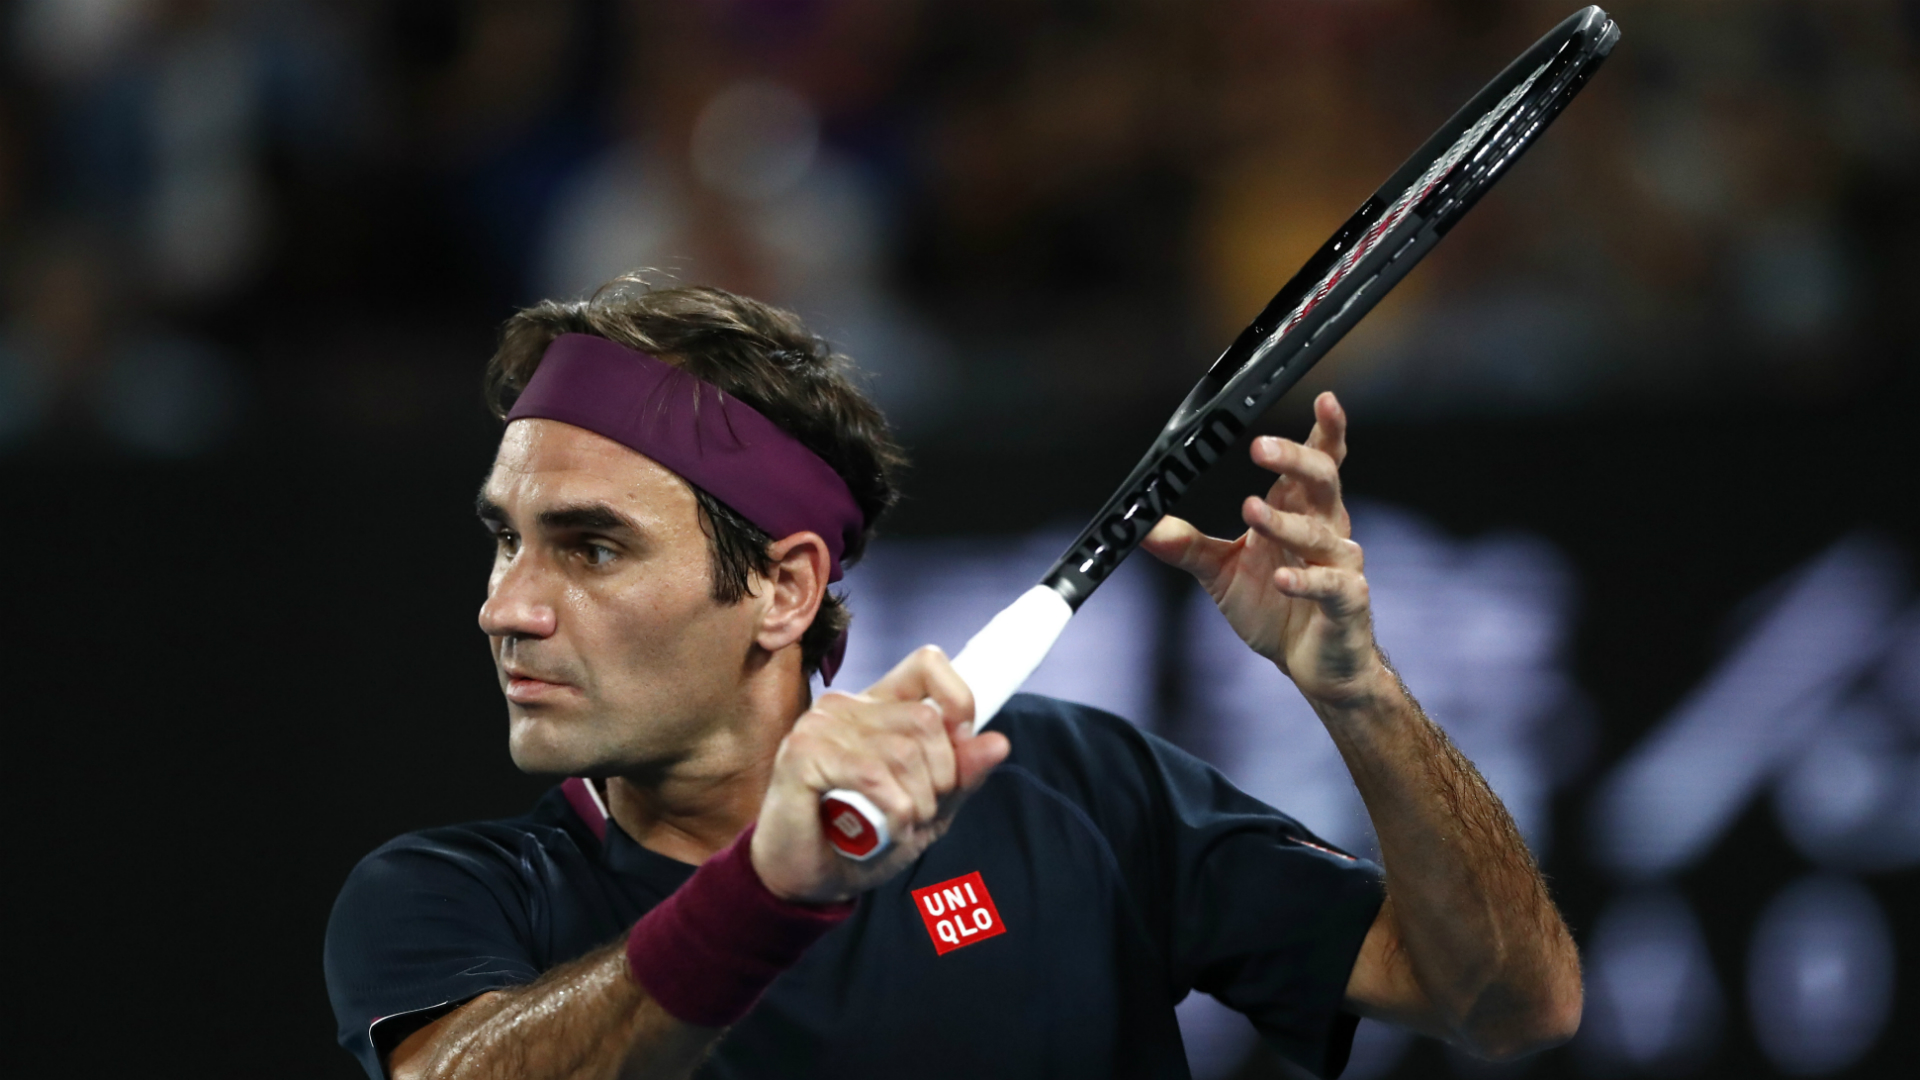 Australian Open 2020: Roger Federer results and form ahead of third-round match with John Millman